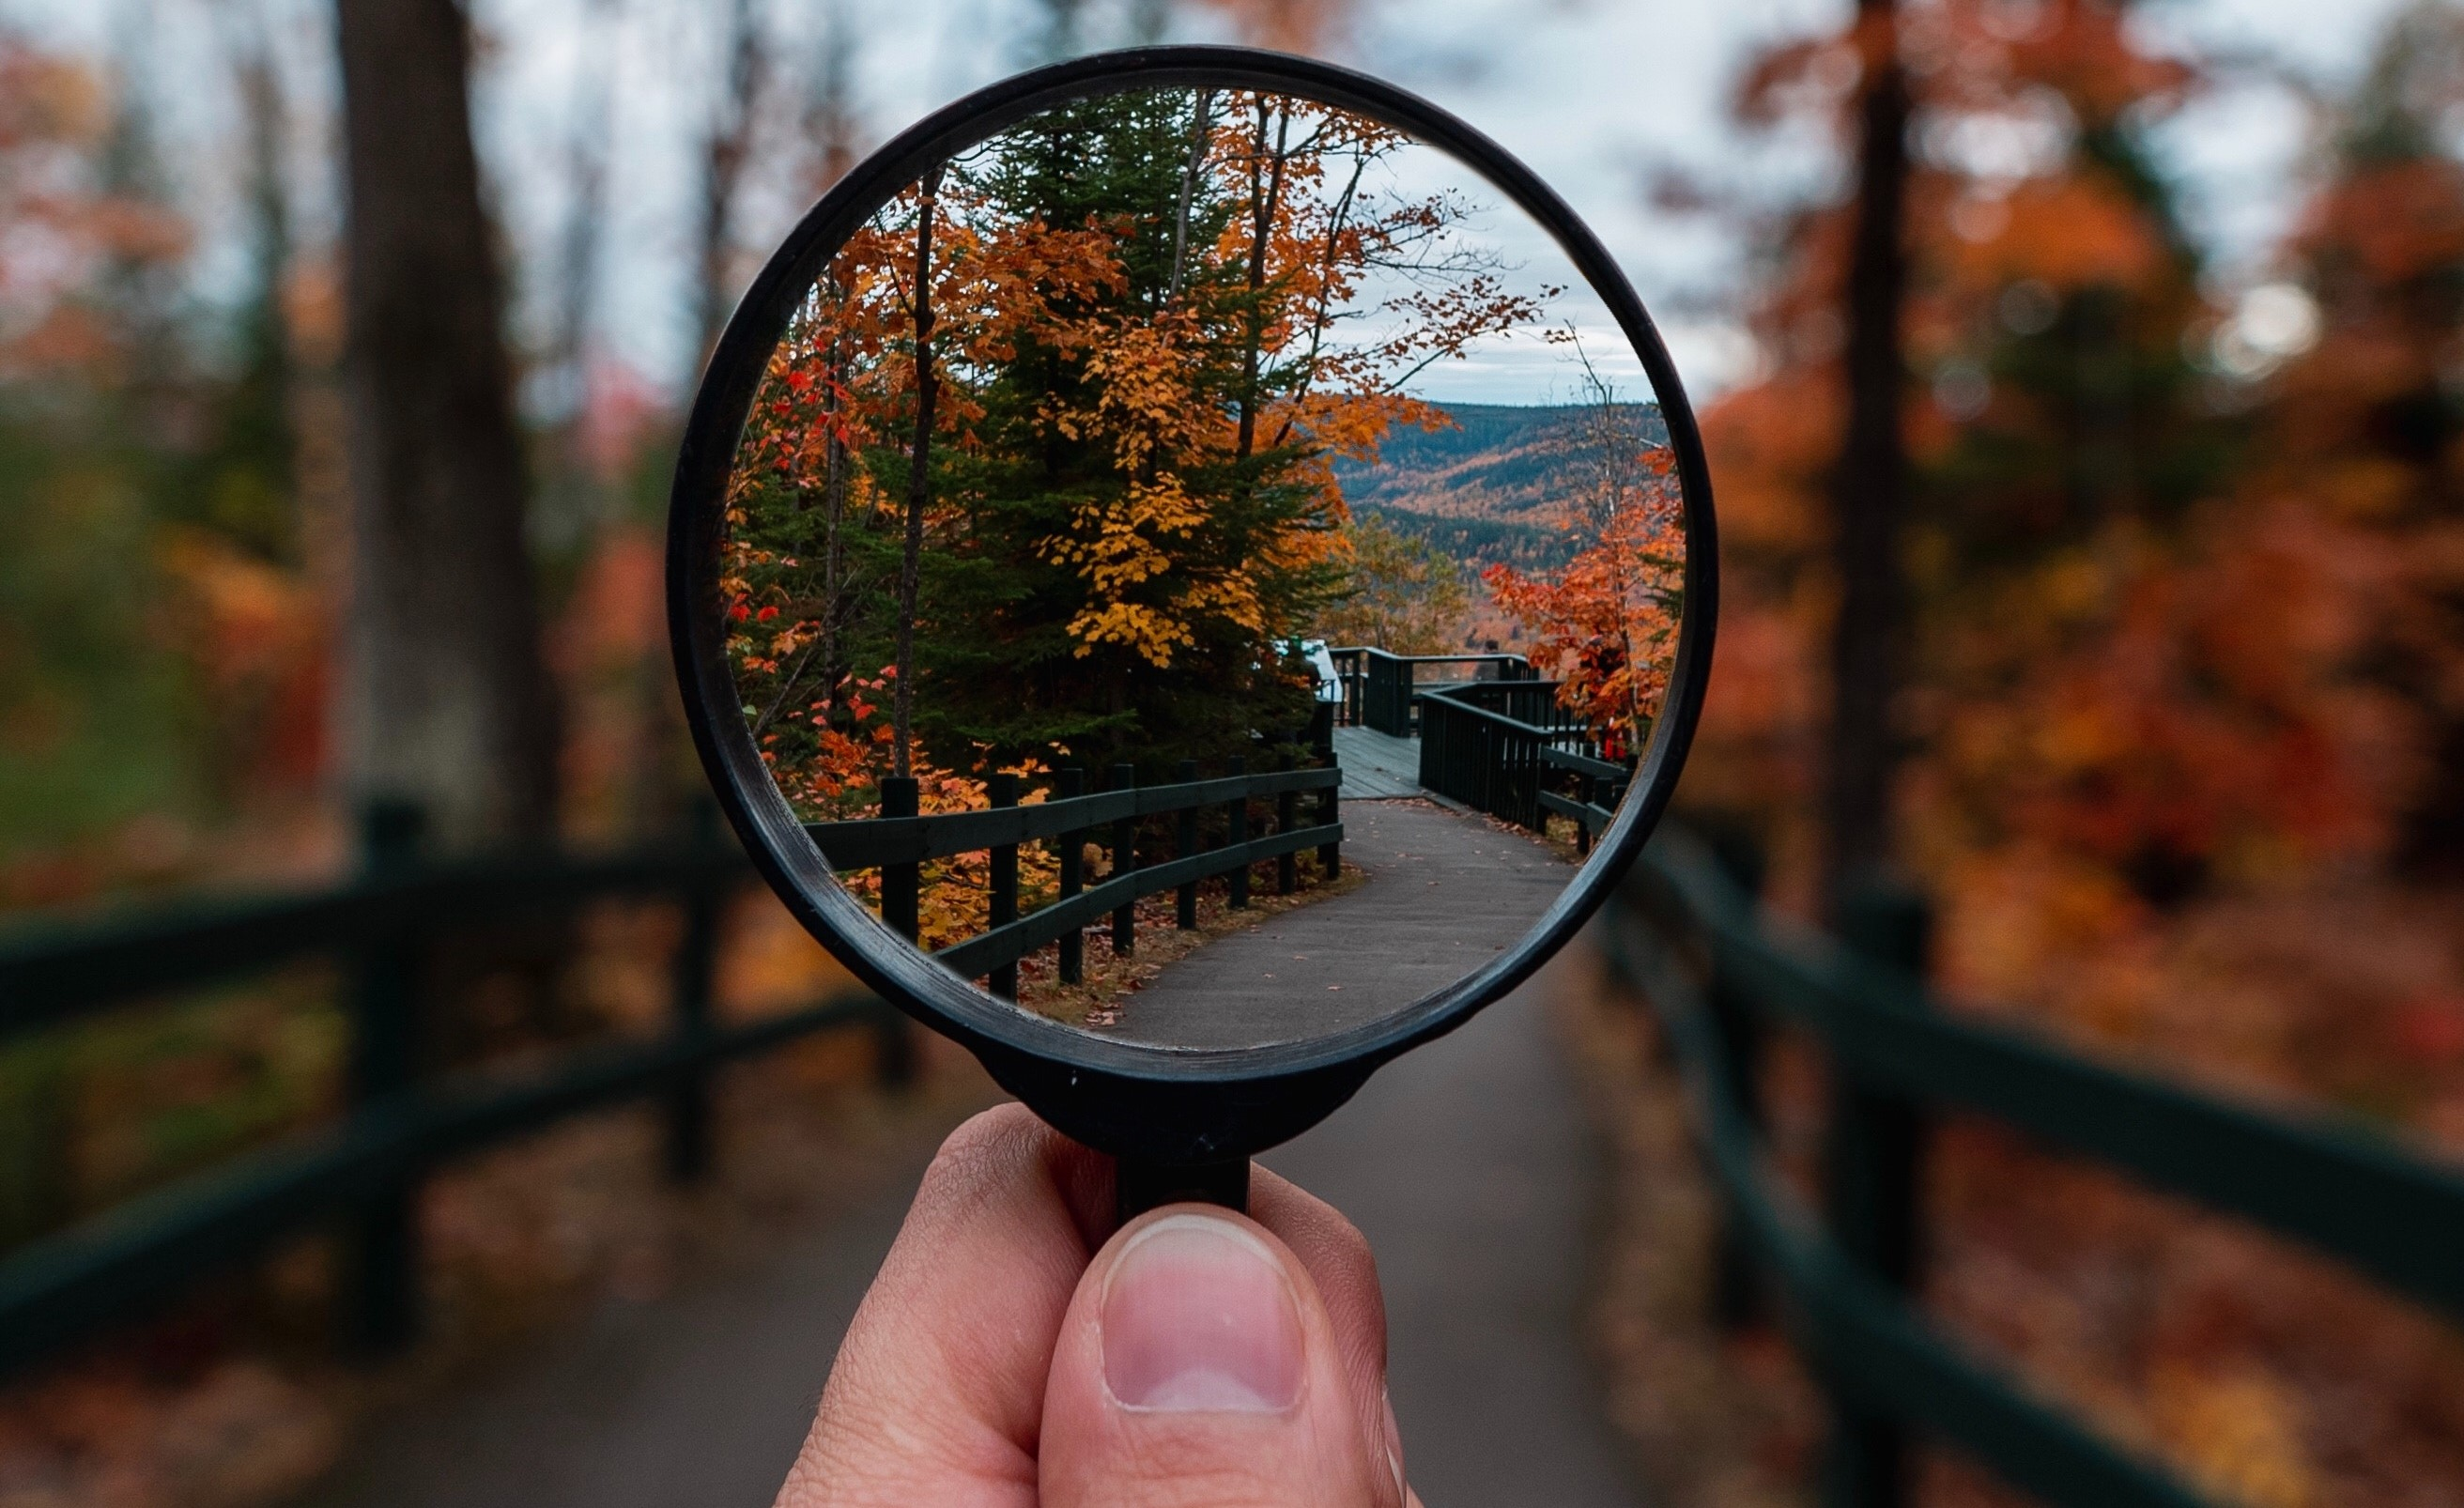 Magnifying glass showing tree lined path with rest of image out of focus.